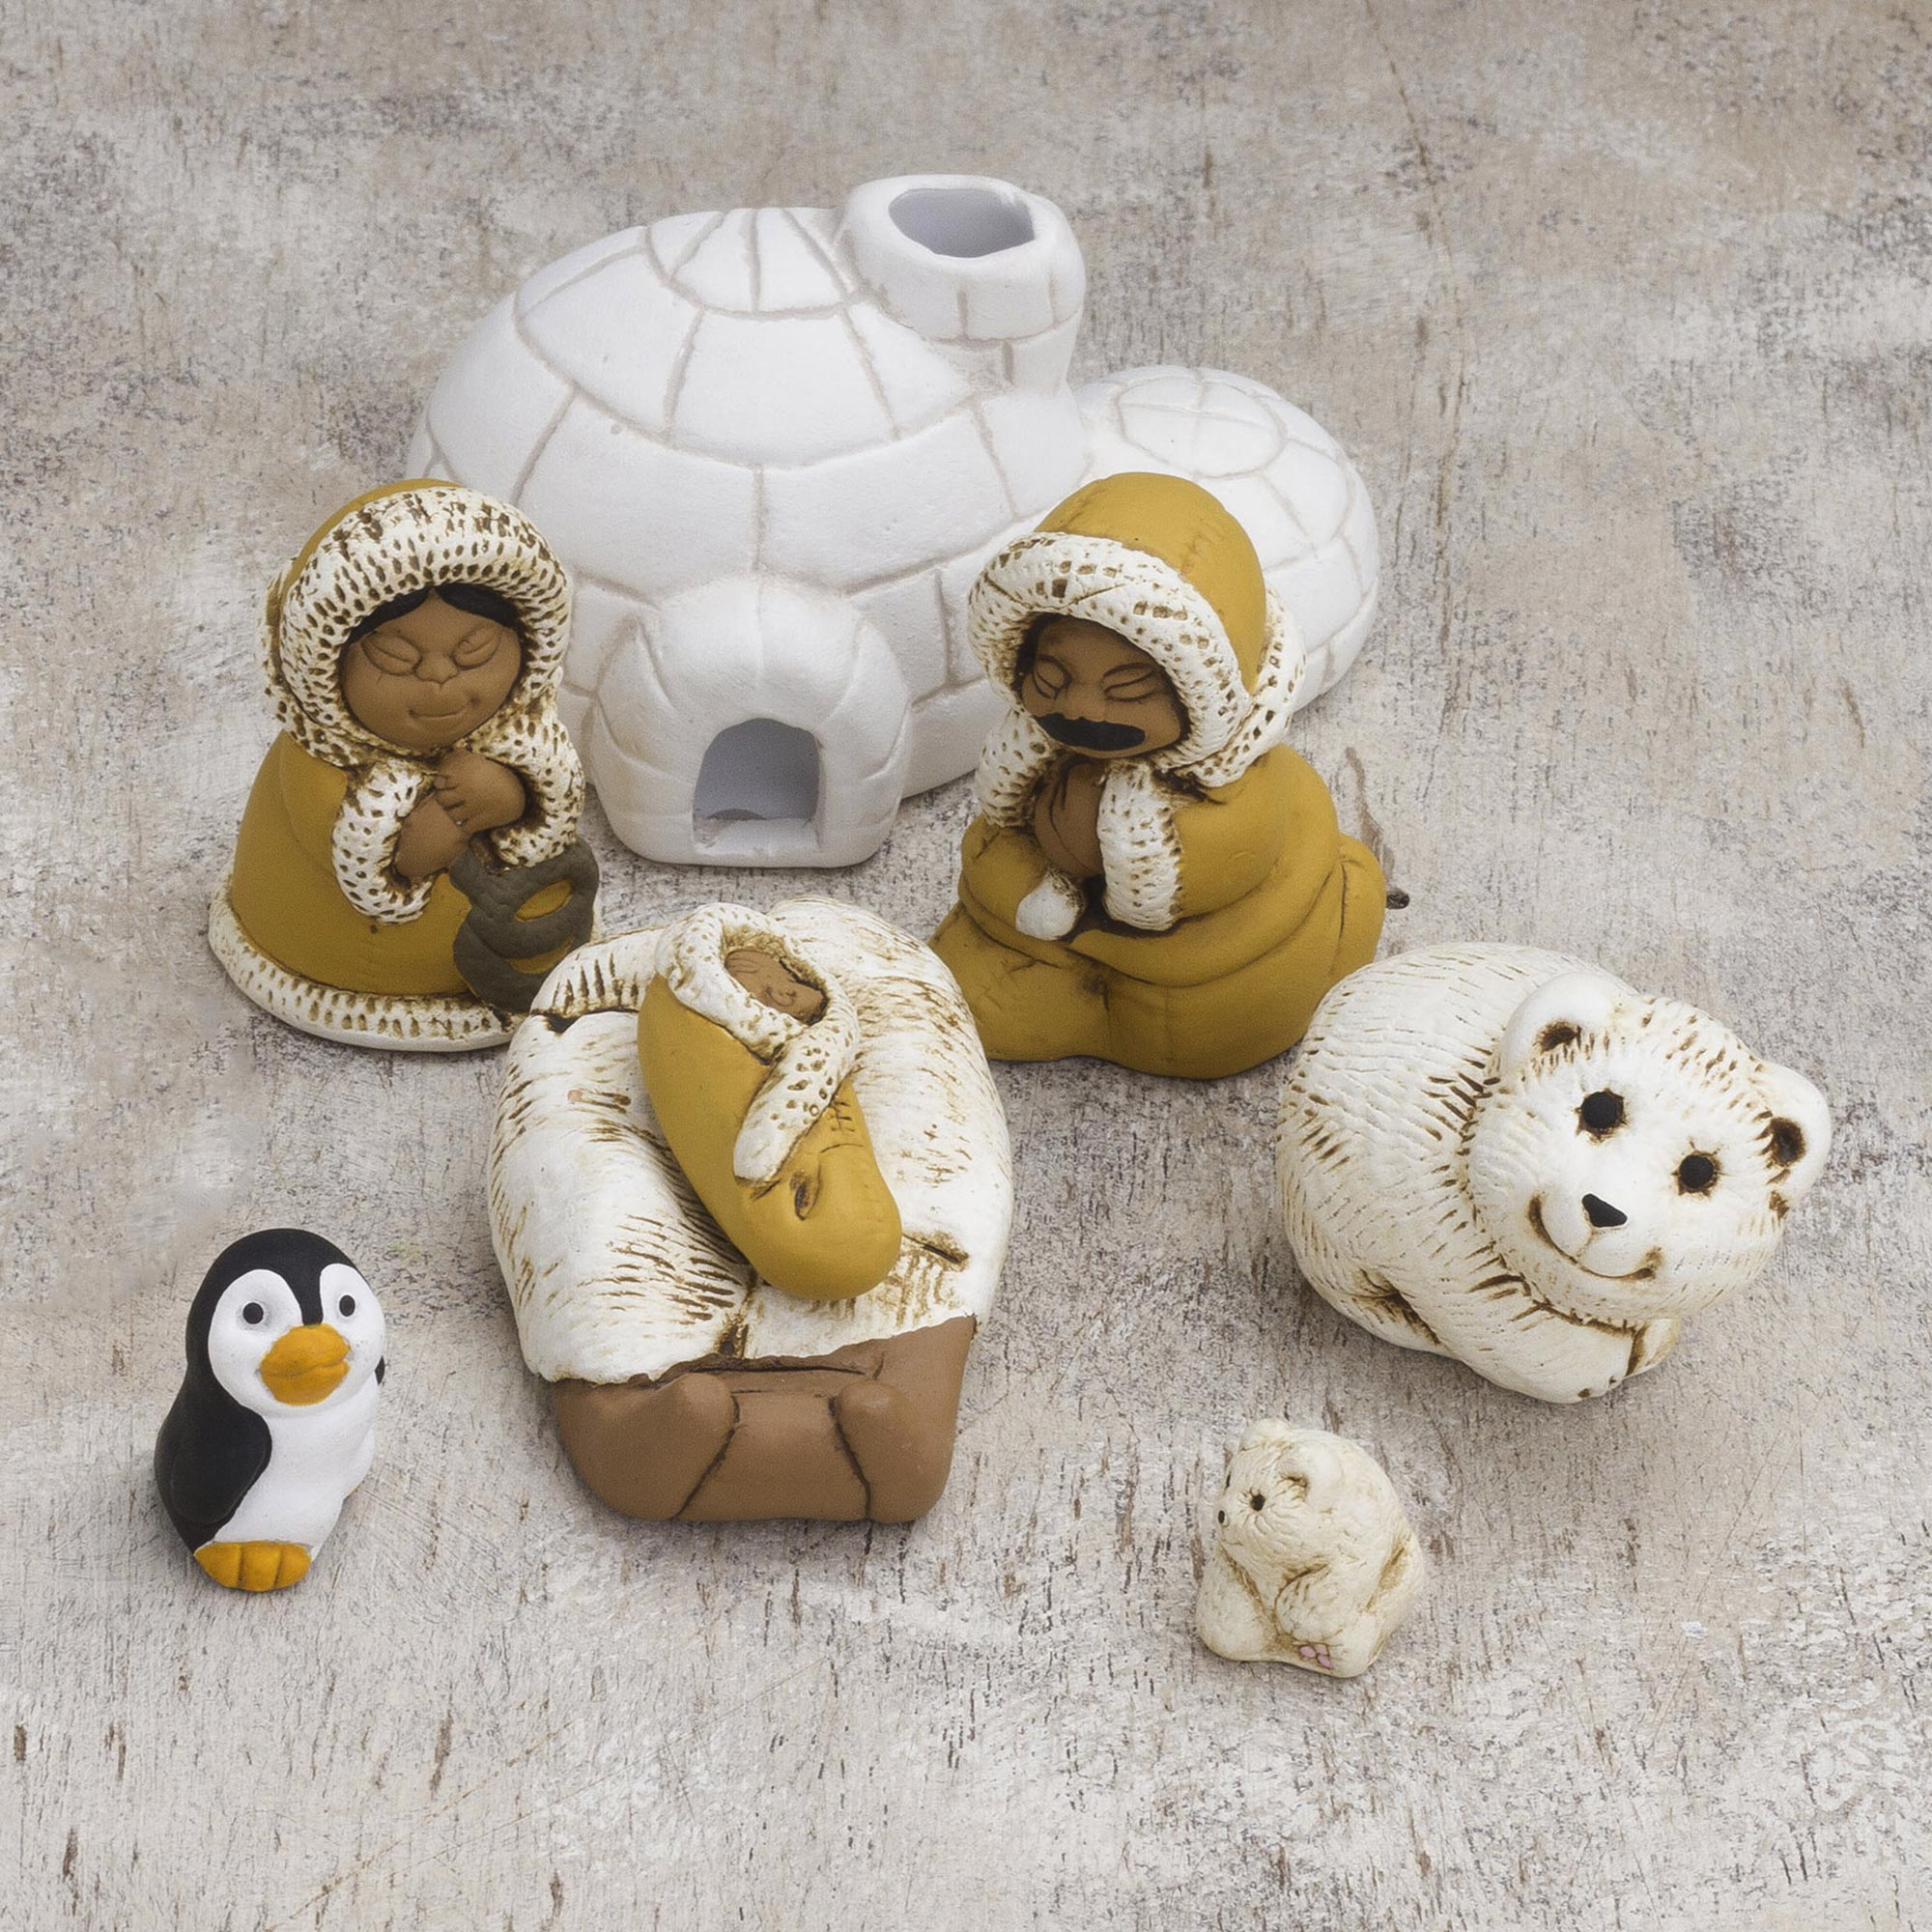 Inuit Family Inuit-Themed Ceramic Nativity Scene from Peru Get Your Home Ready for the Holidays